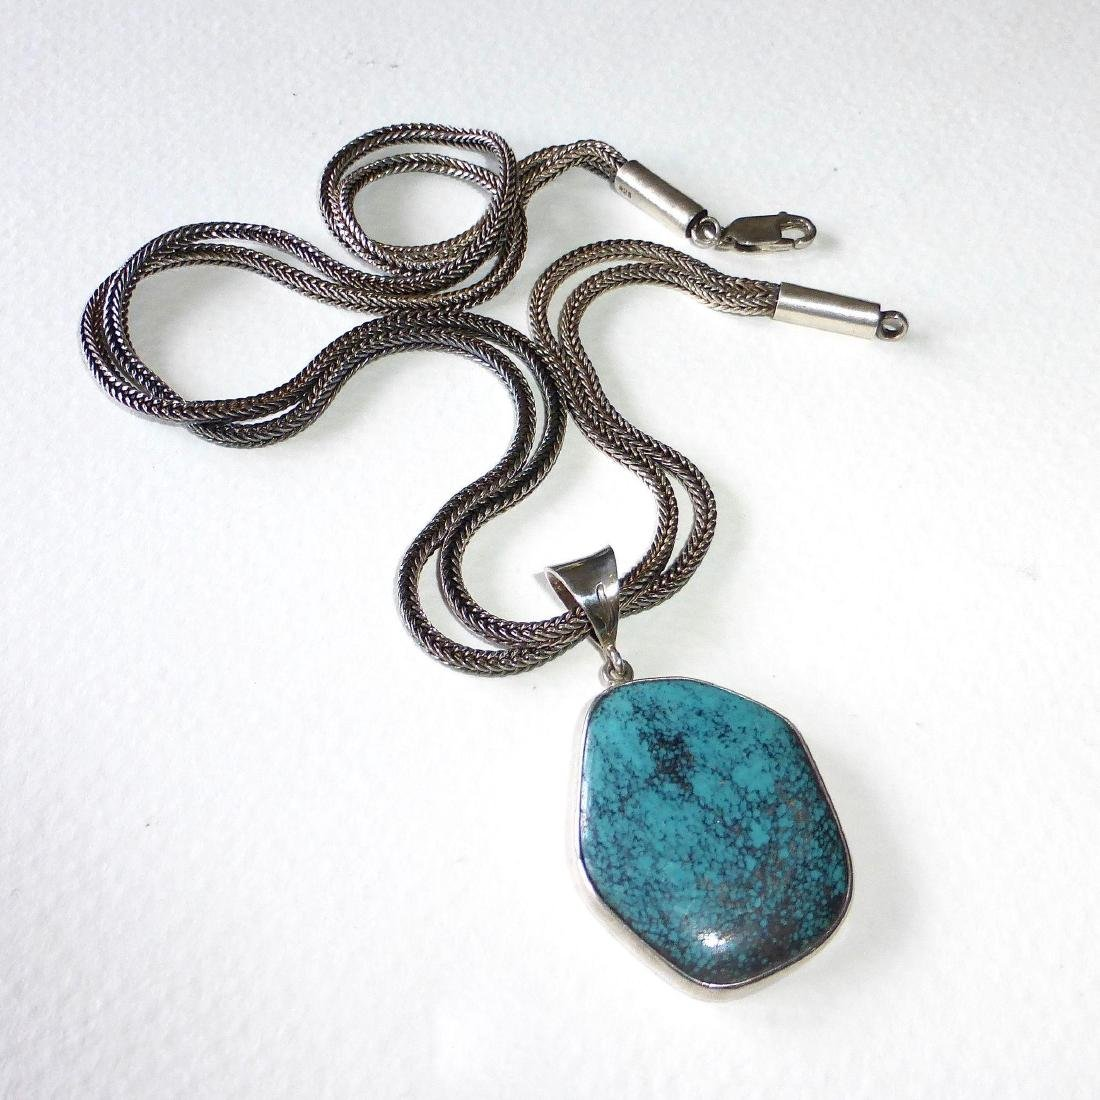 Vintage Sterling Silver Spiderweb Turquoise Necklace